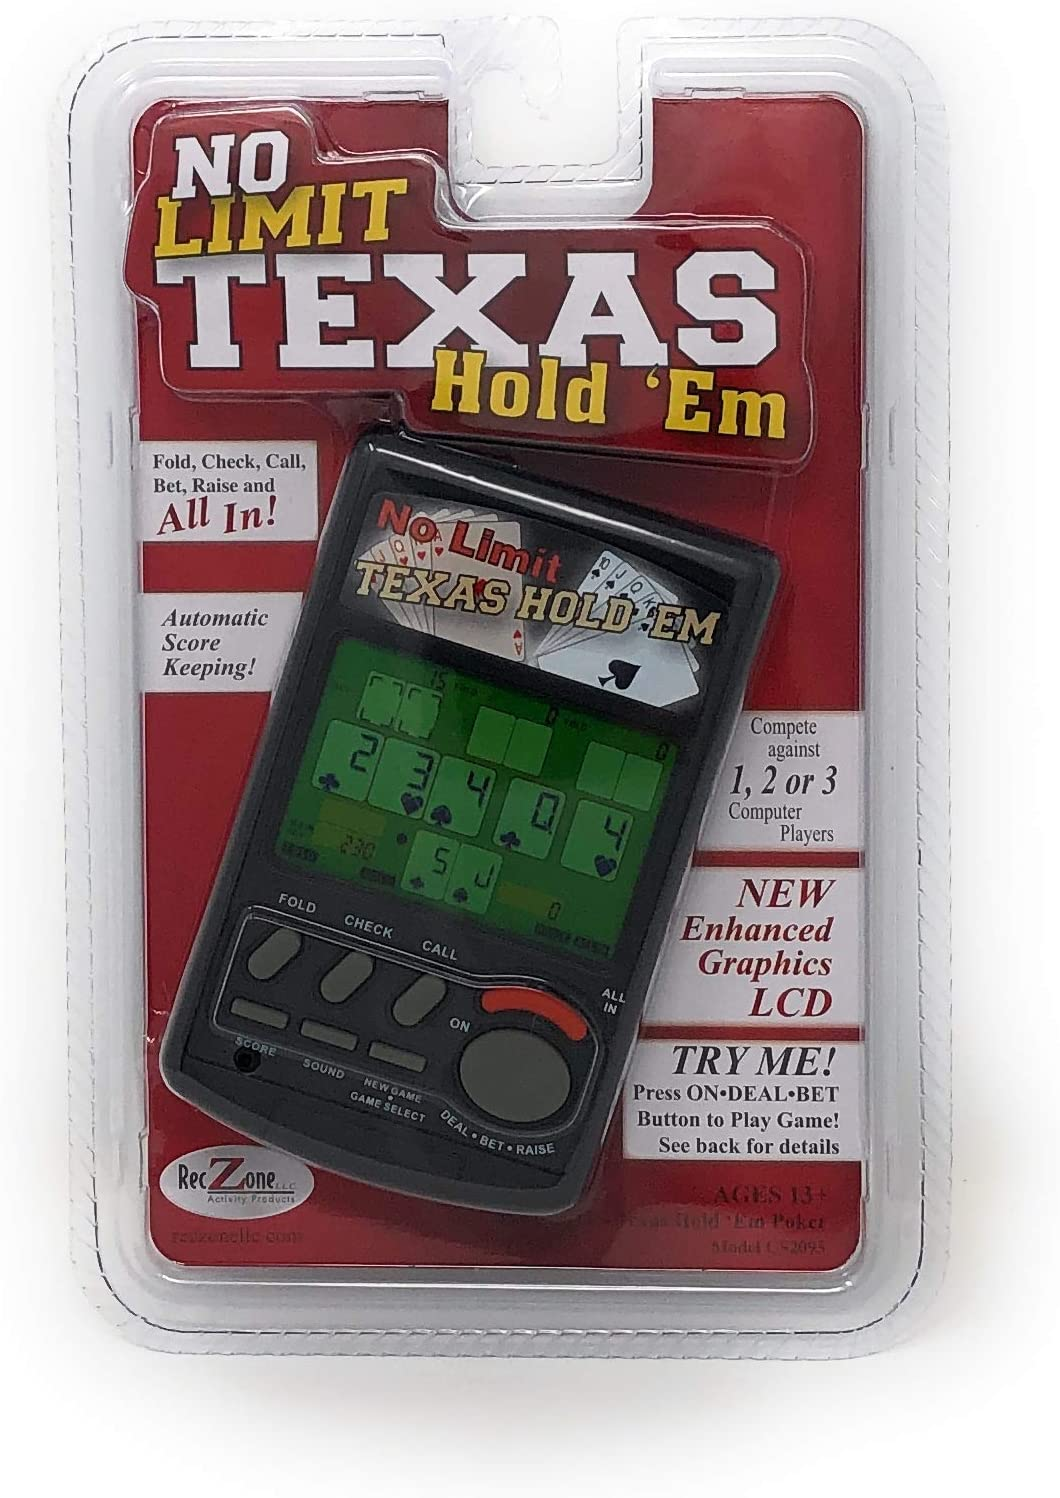 No Limit Texas Hold'em Handheld service Video Game Cheap mail order shopping Poker